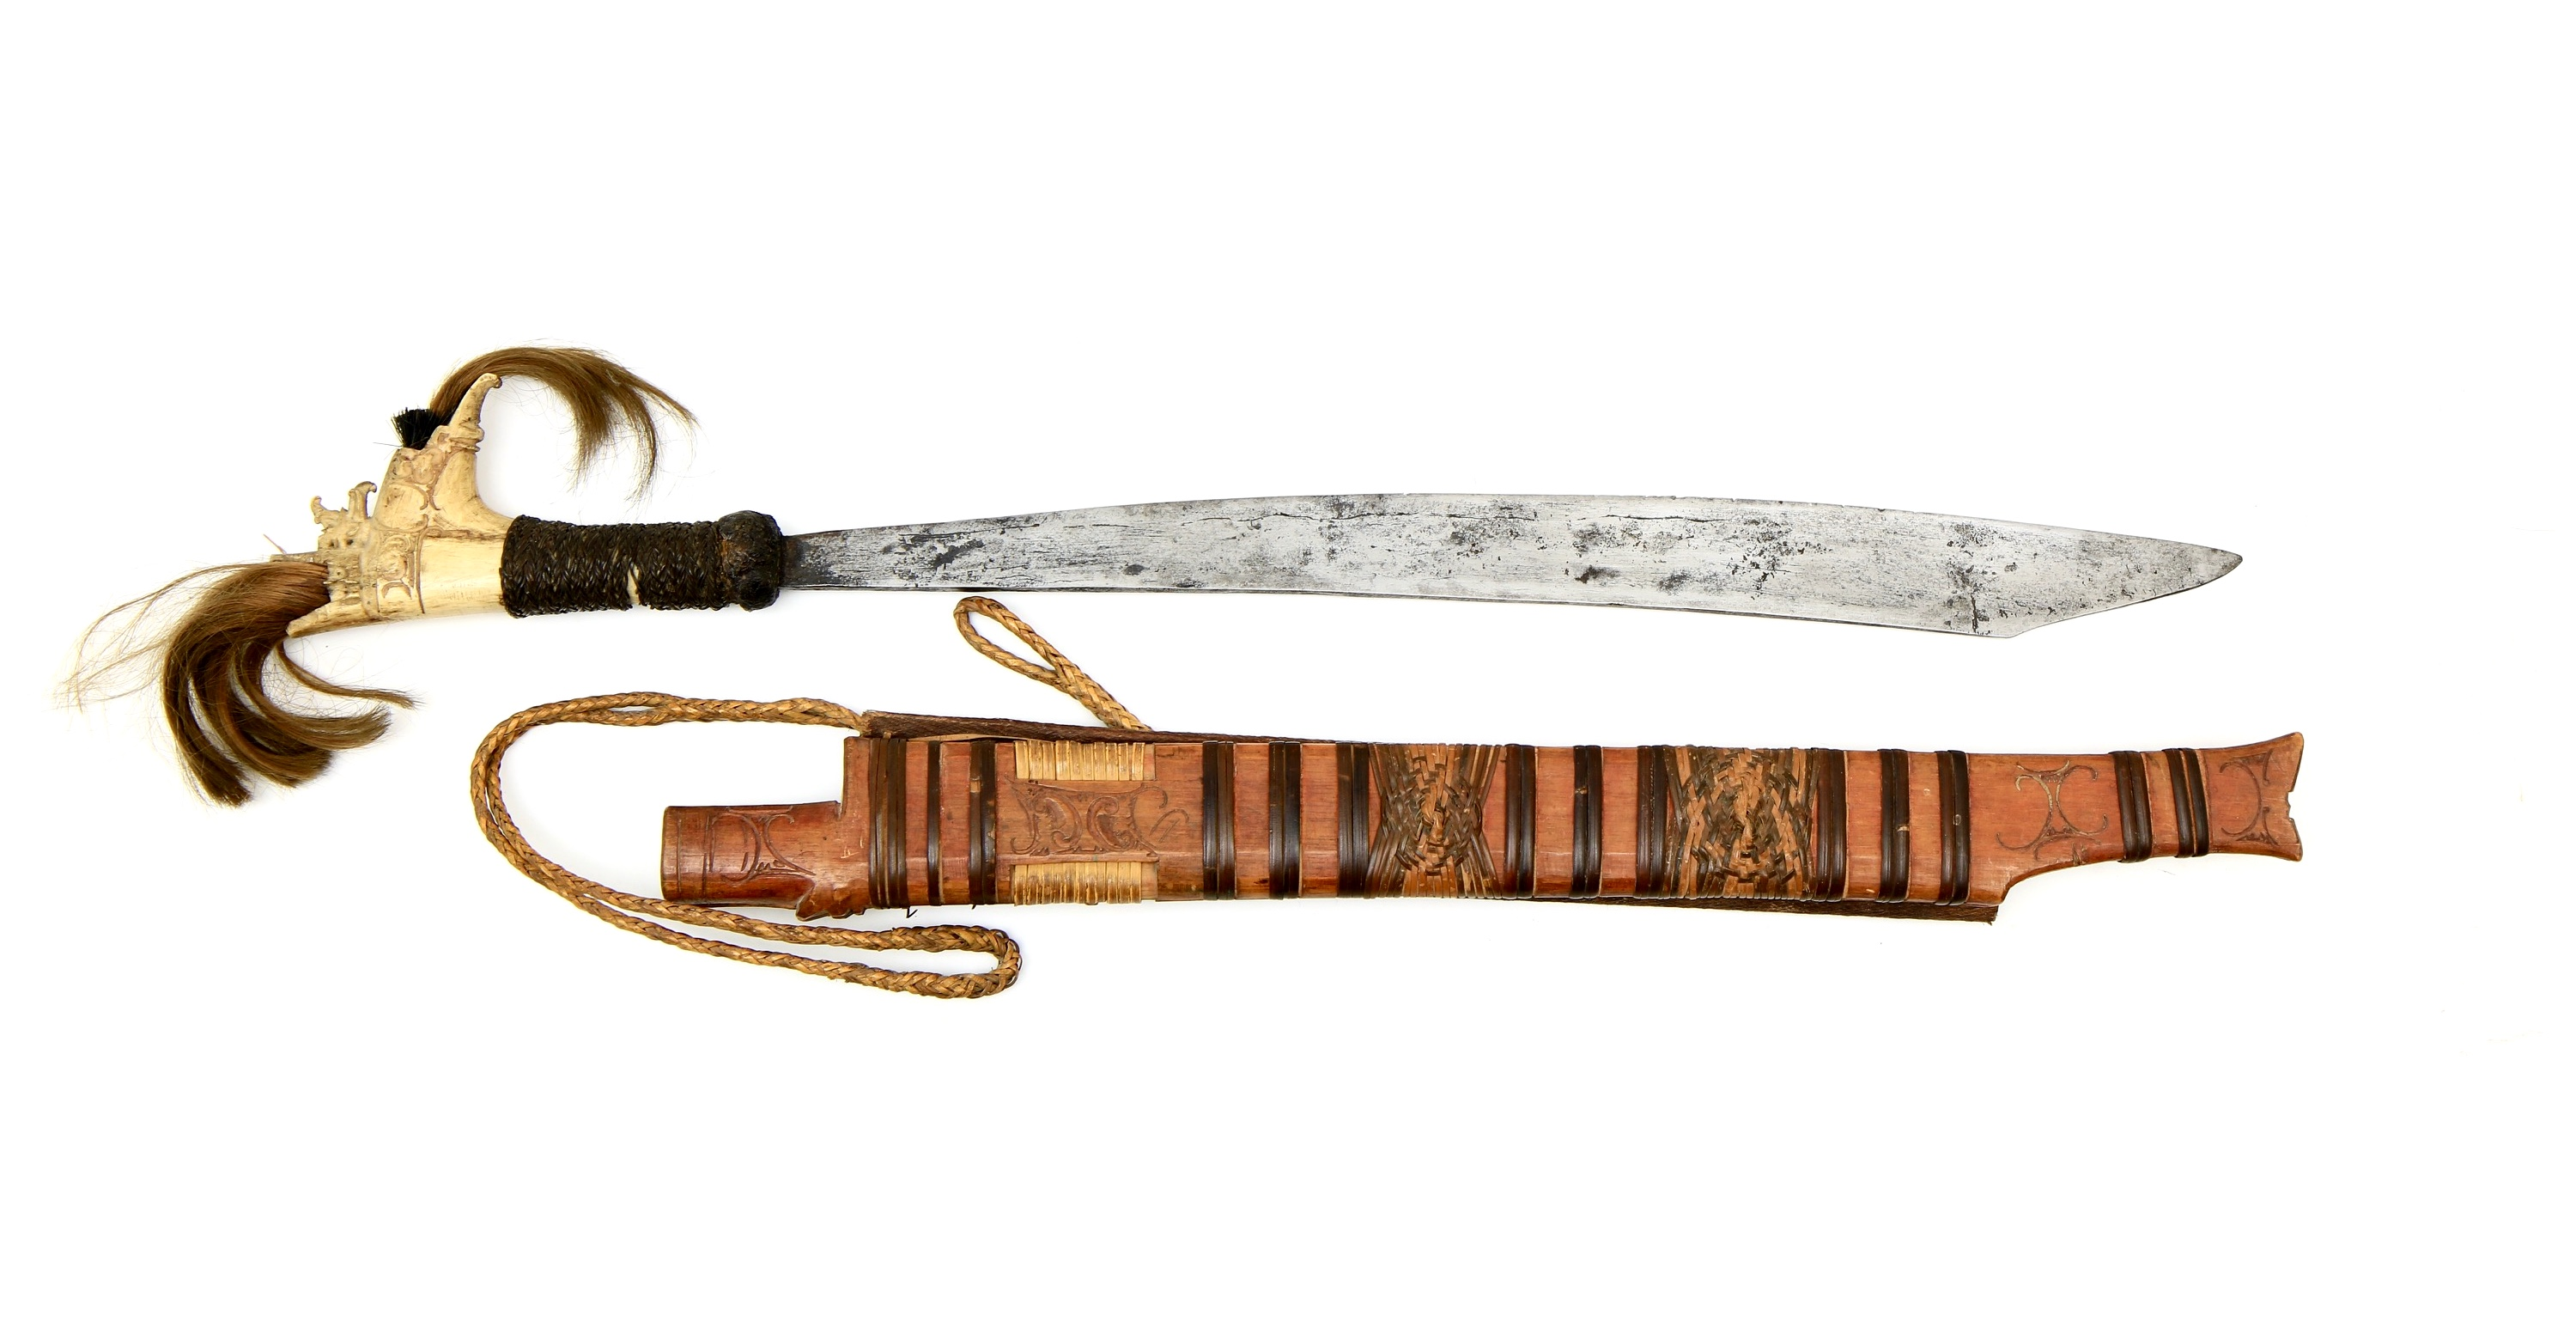 Mandau with scabbard